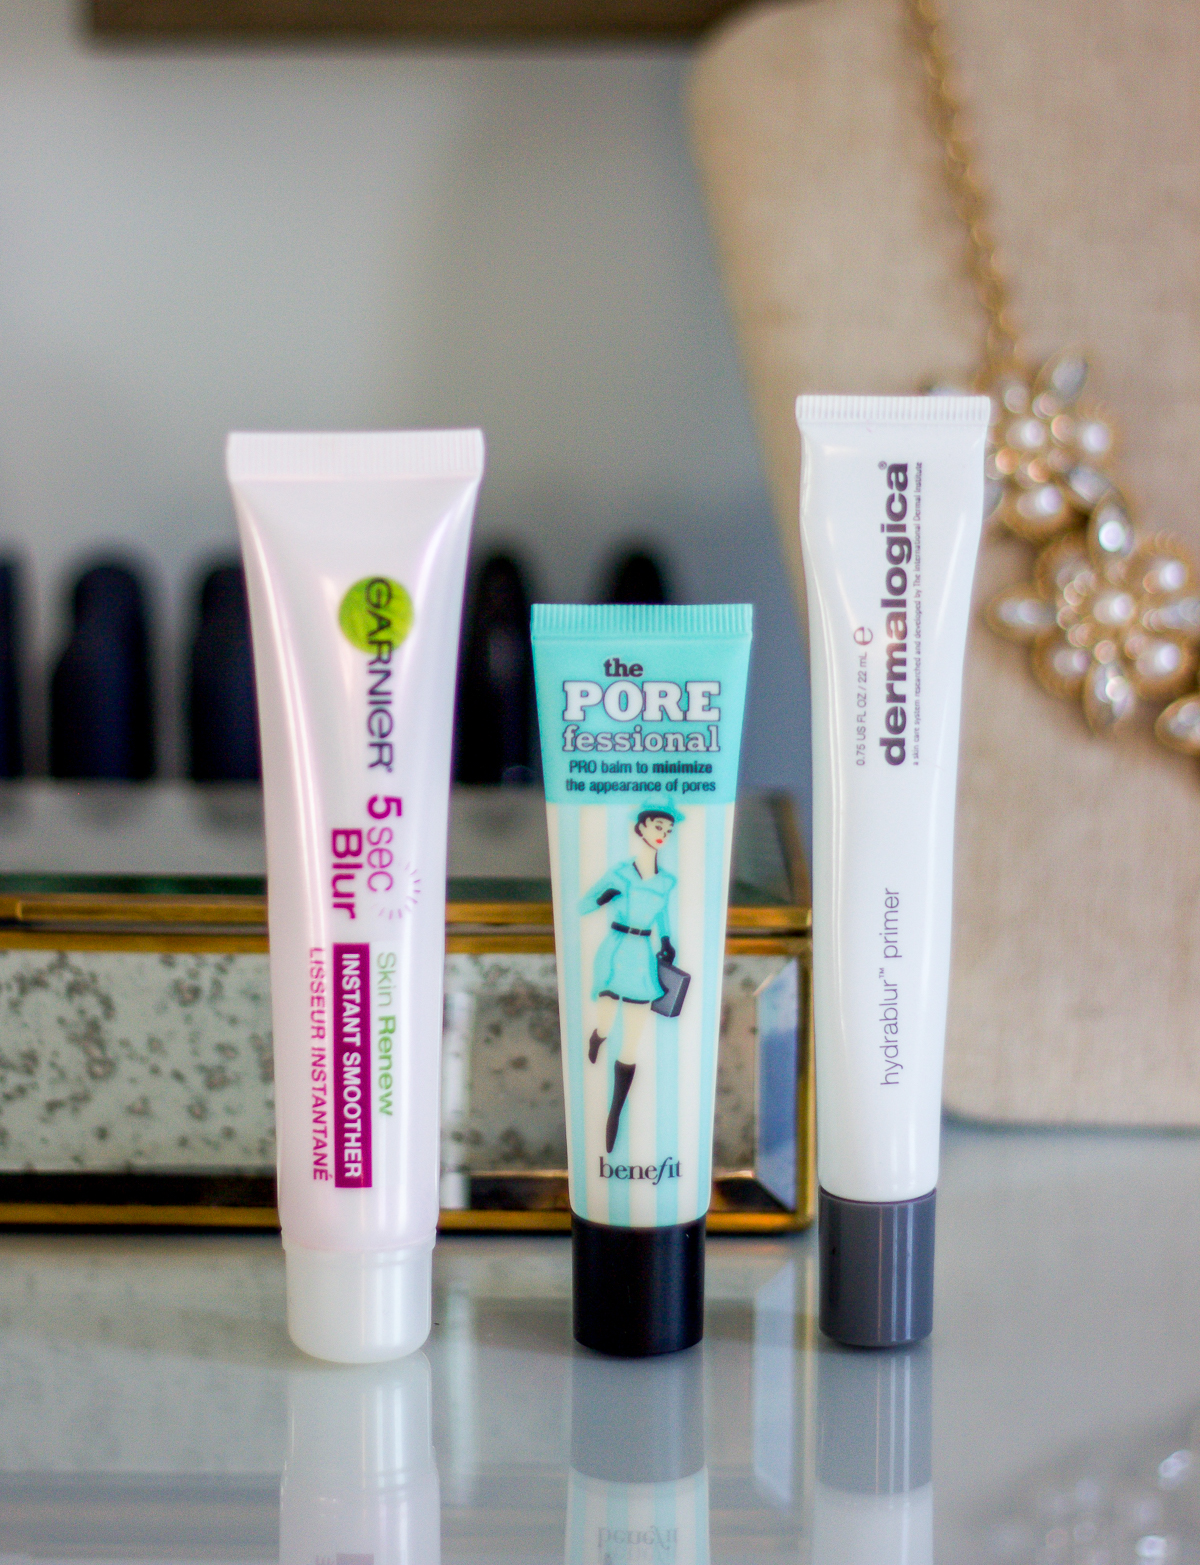 The best primers at different price points, from Garnier, Benefit Cosmetics and Dermalogica